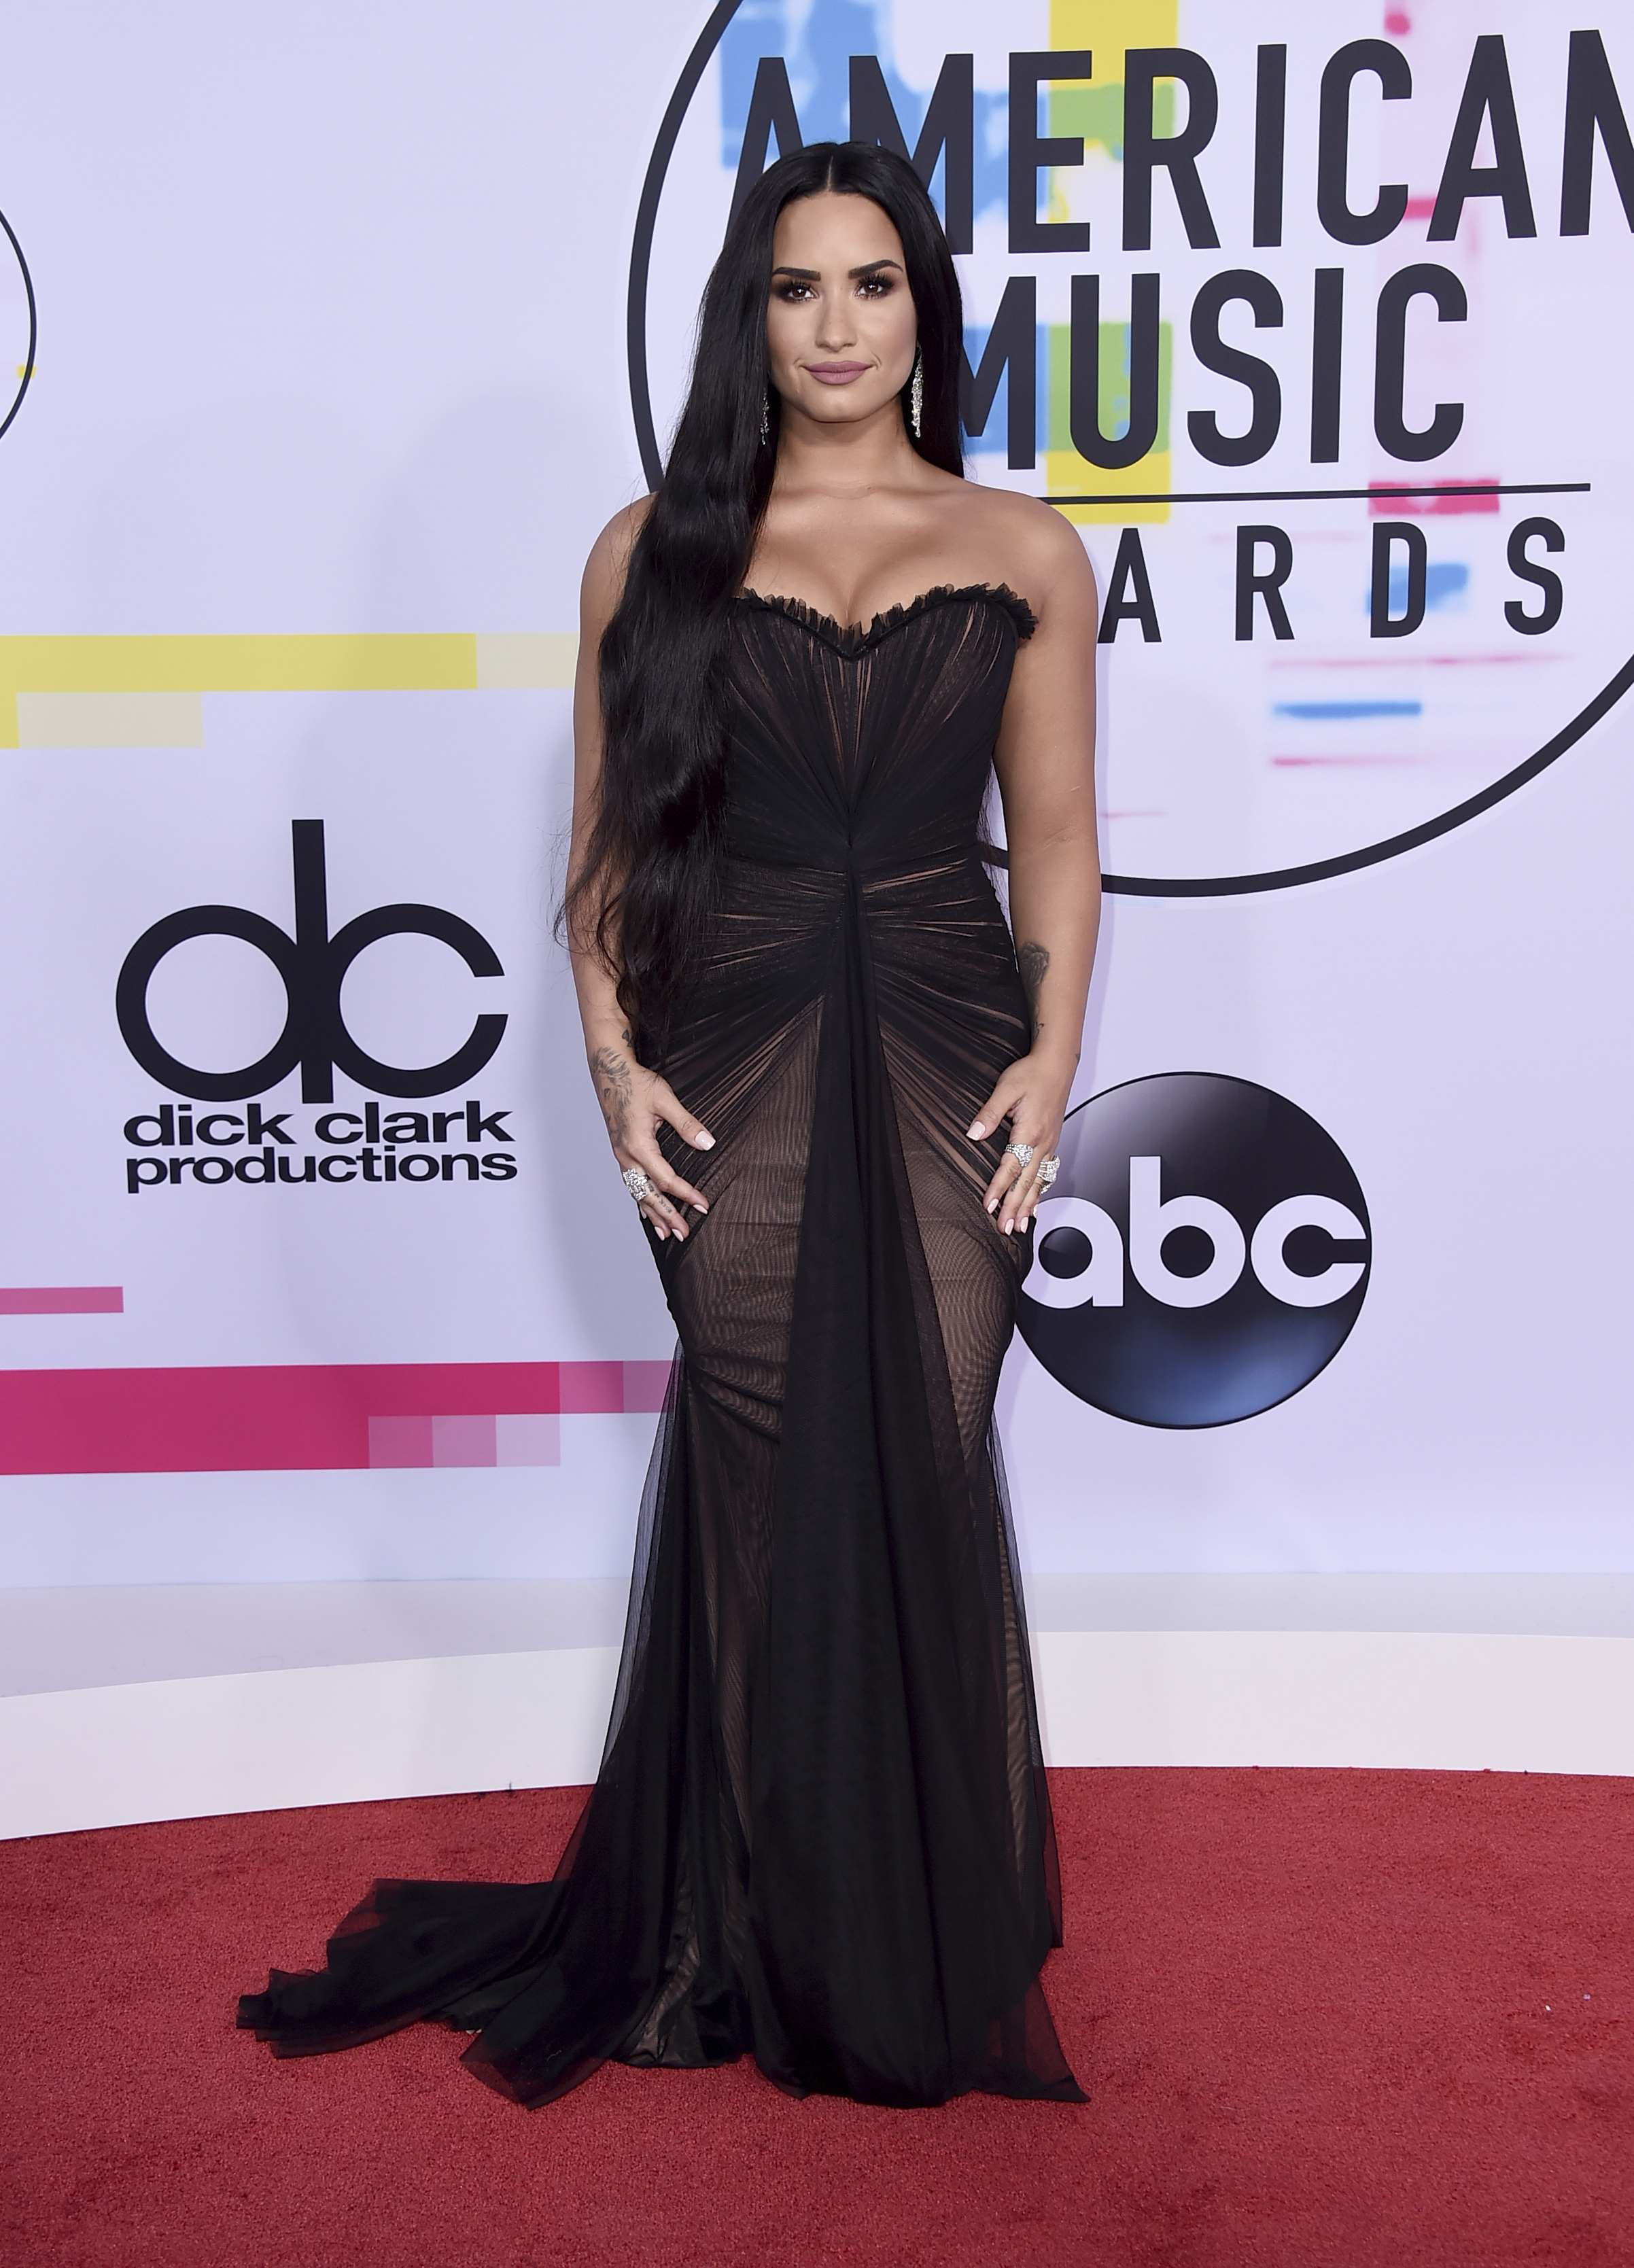 <div class='meta'><div class='origin-logo' data-origin='none'></div><span class='caption-text' data-credit='Jordan Strauss/Invision/AP'>Demi Lovato arrives at the American Music Awards at the Microsoft Theater on Sunday, Nov. 19, 2017, in Los Angeles.</span></div>